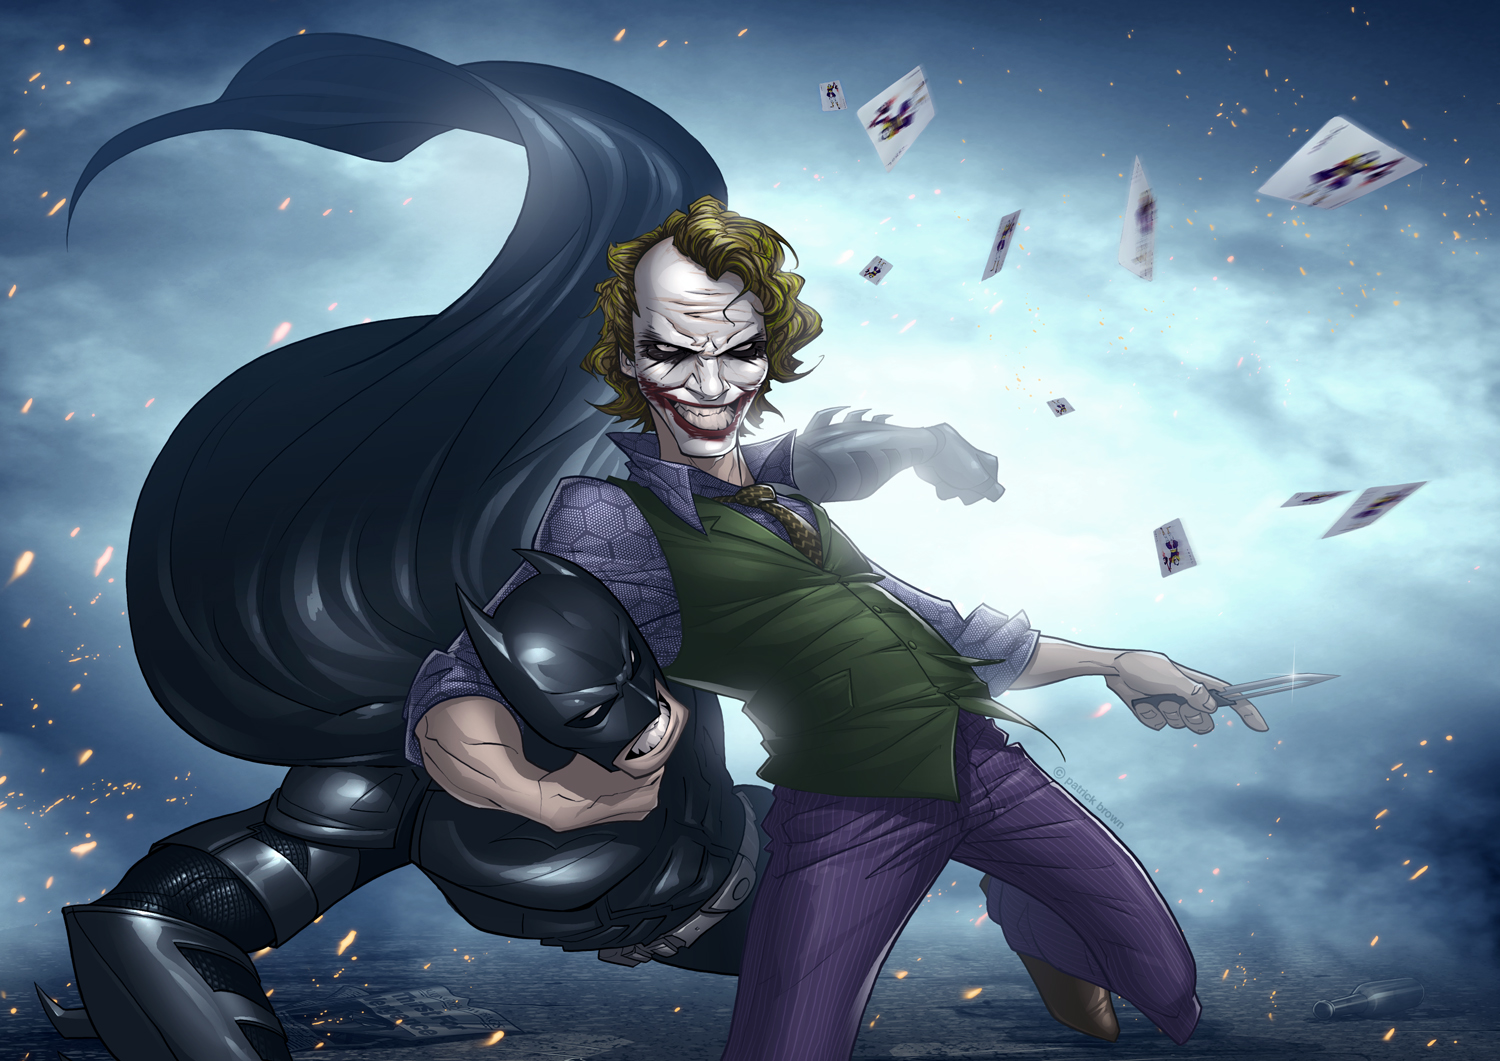 The Dark Knight Files: why so serious wallpaper 2012 series  The Dark Knight...